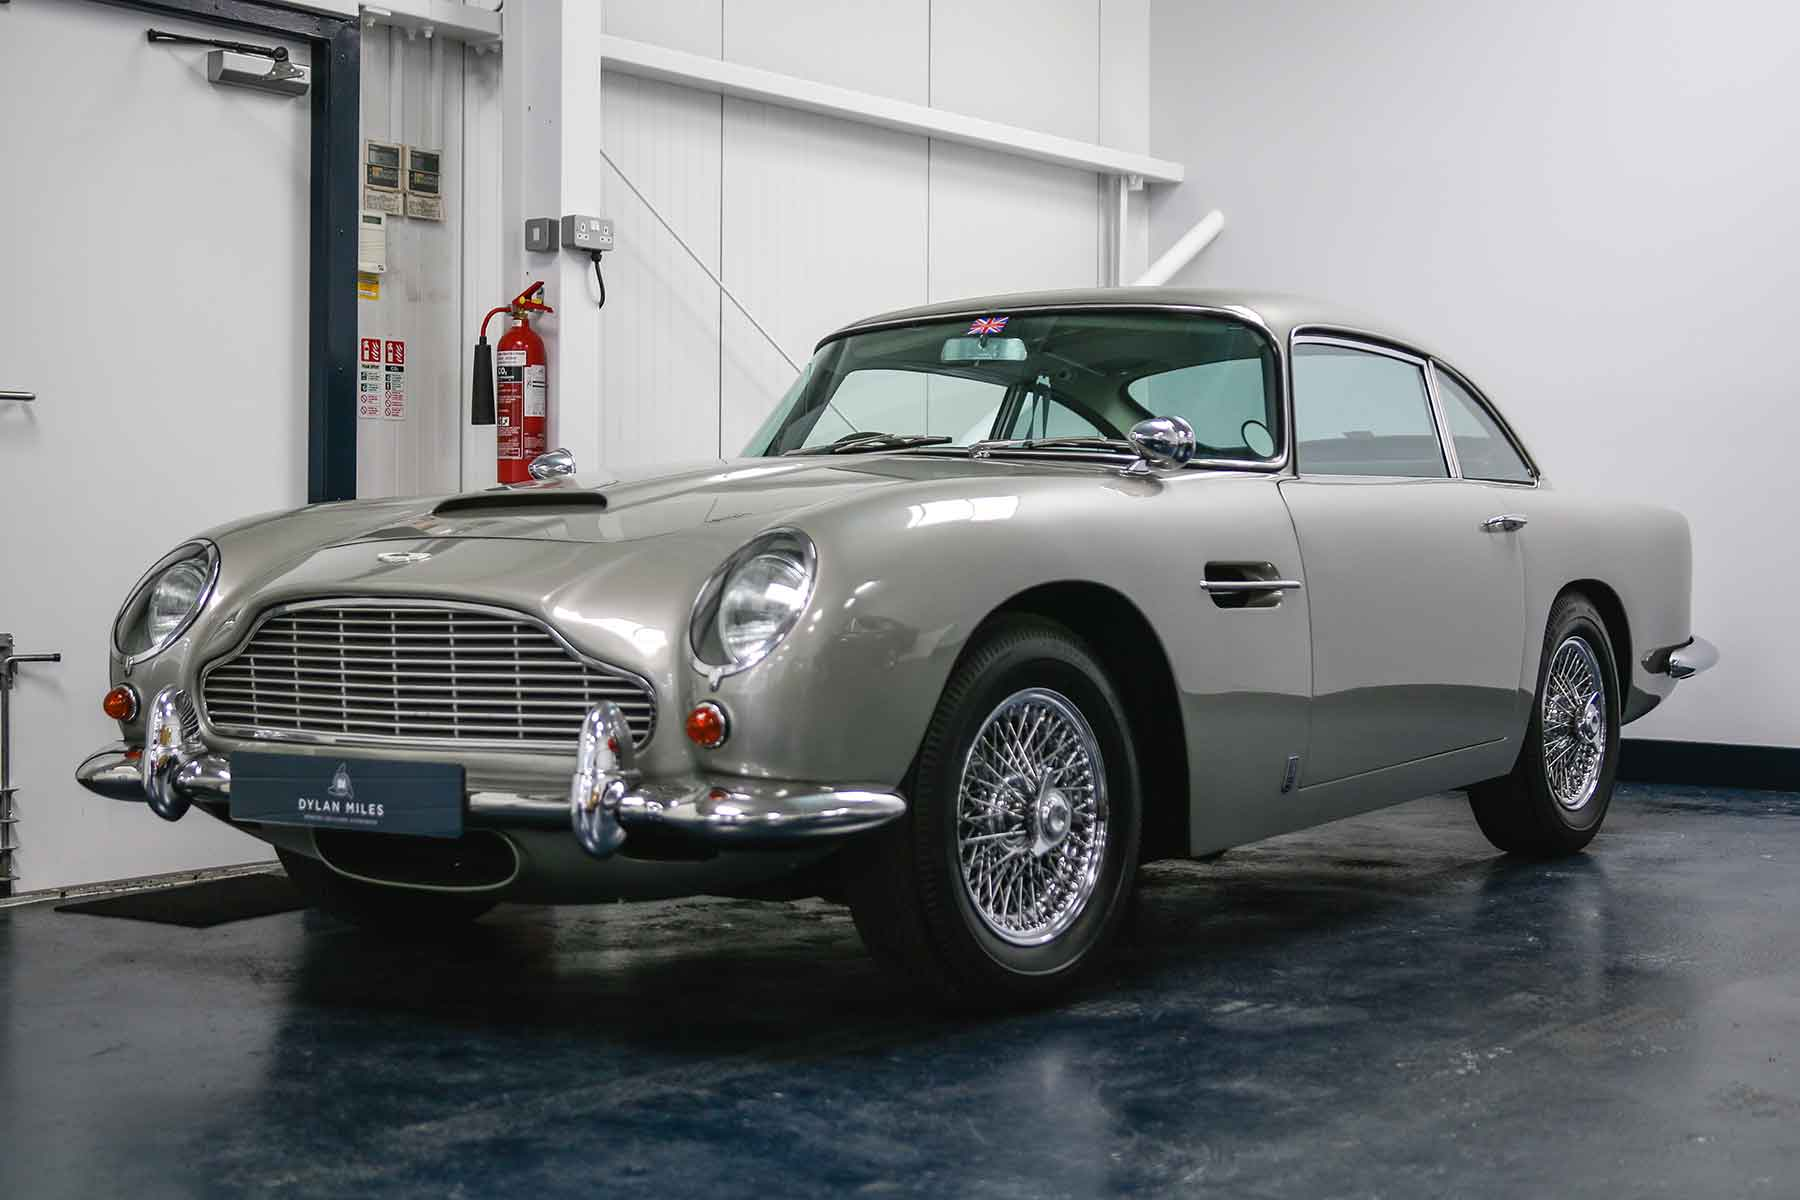 aston martin 'bond cars' star in classic collection